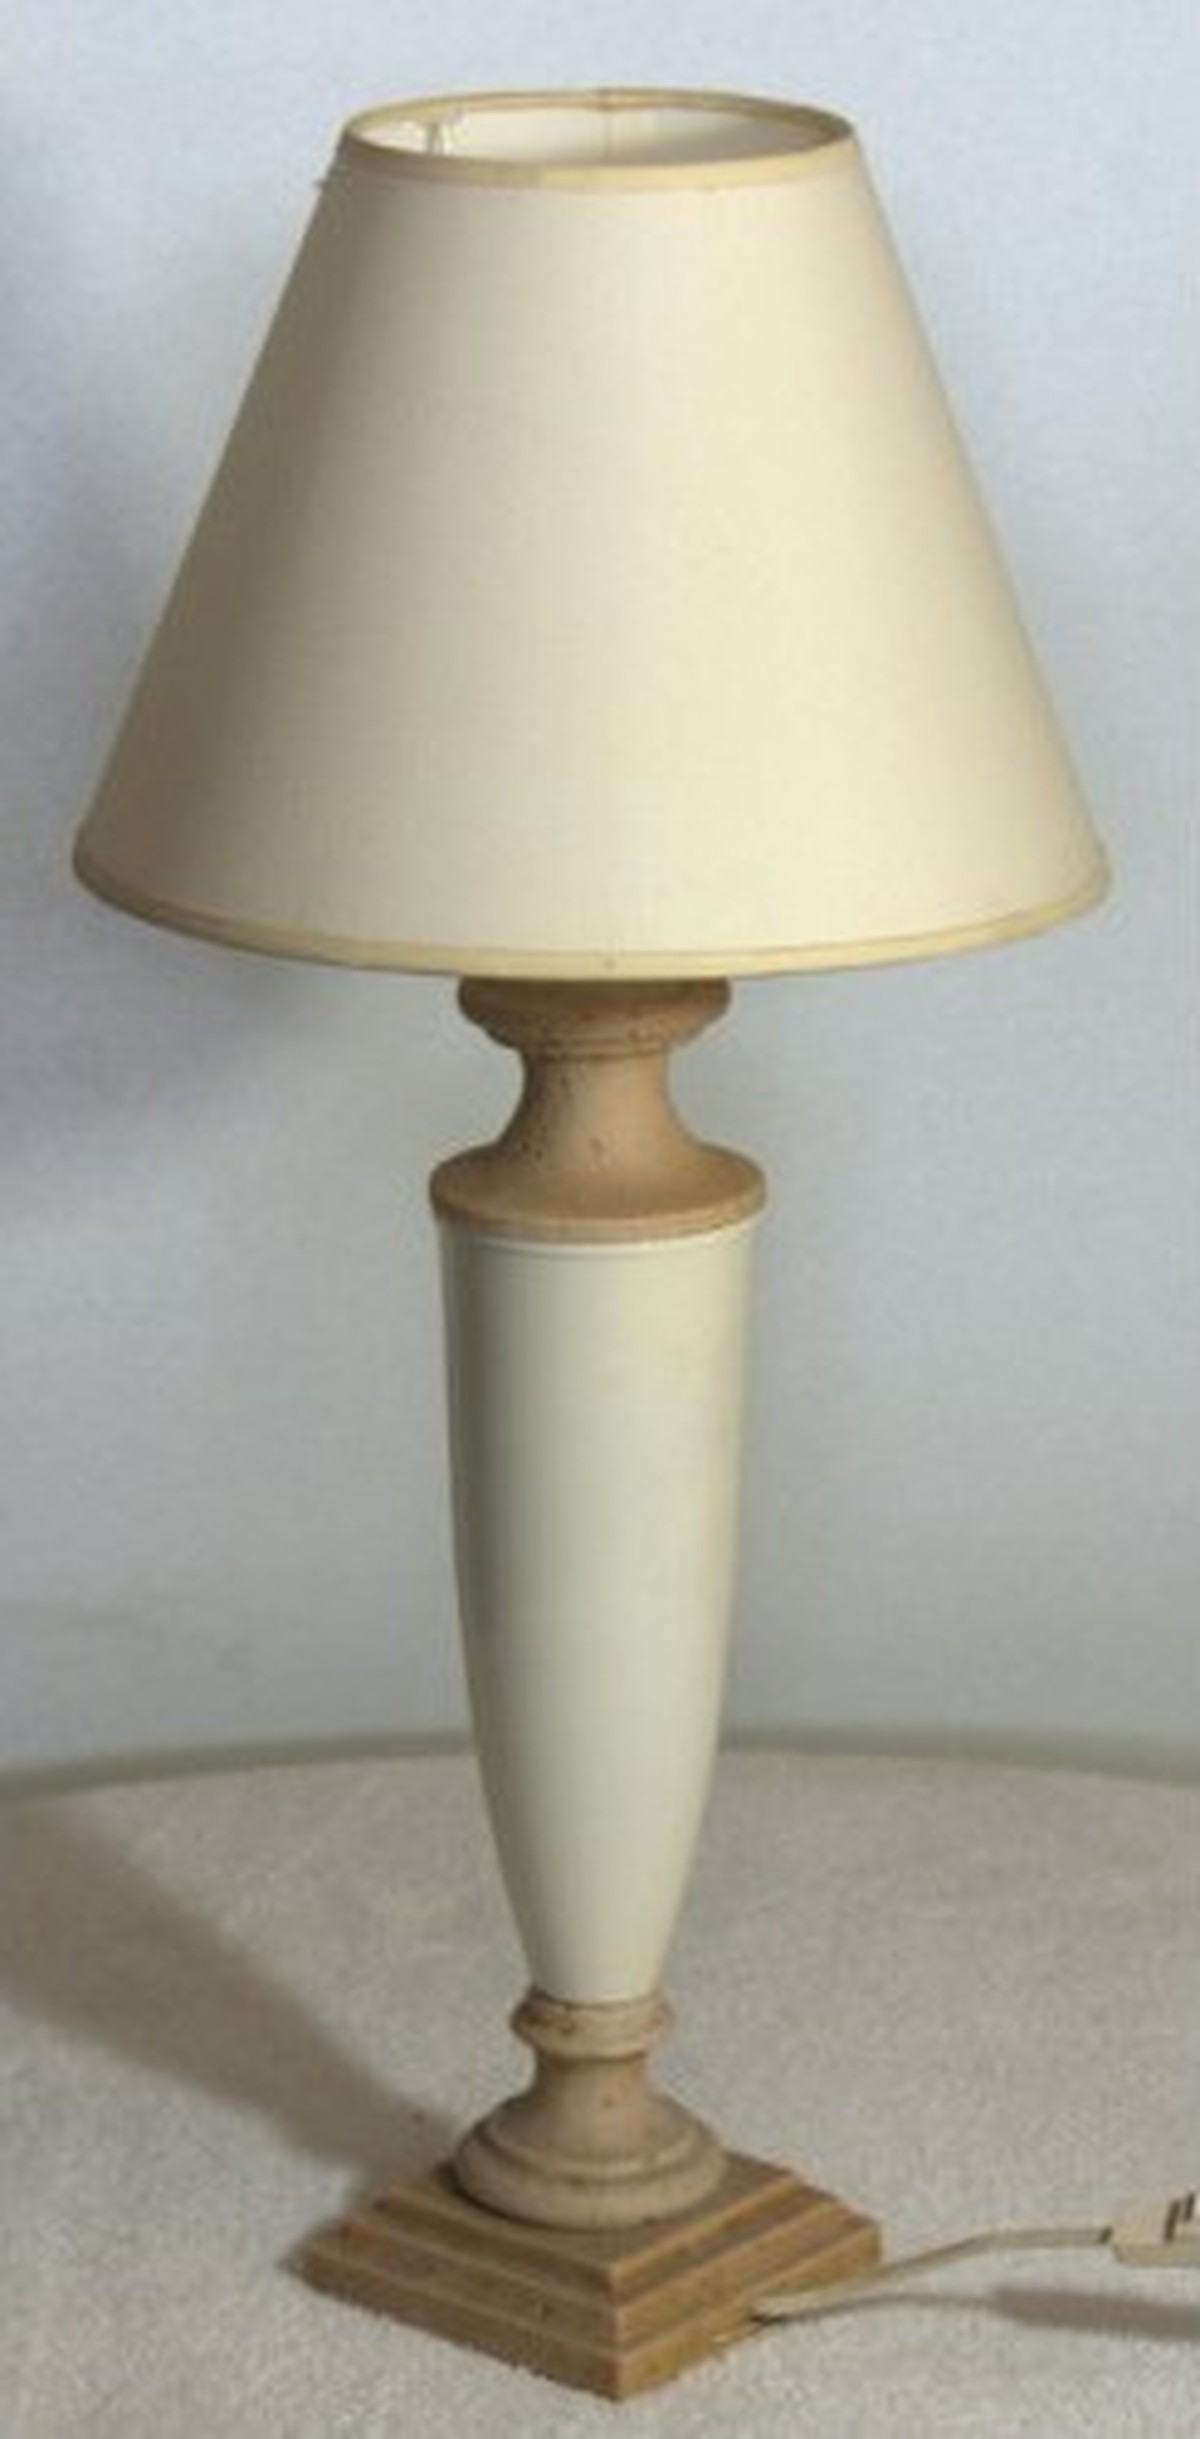 white folding chair ethan allen pine rocking secondhand hotel furniture | lighting 26x bedside lamps - peterborough, cambridgeshire